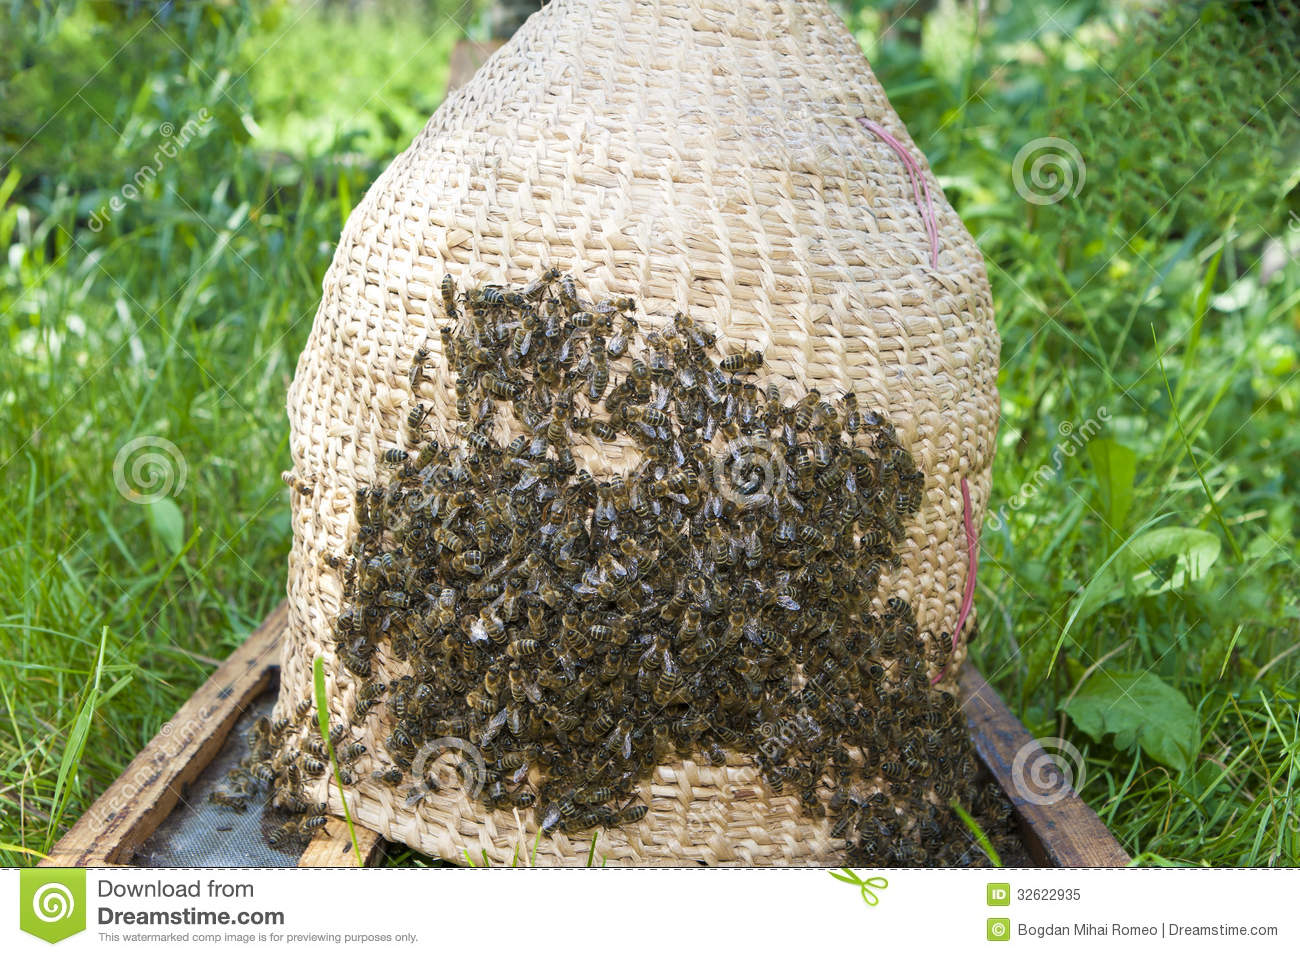 Swarm of bees and hive wicker basket royalty free stock photo image 32622935 - Wicker beehive basket ...